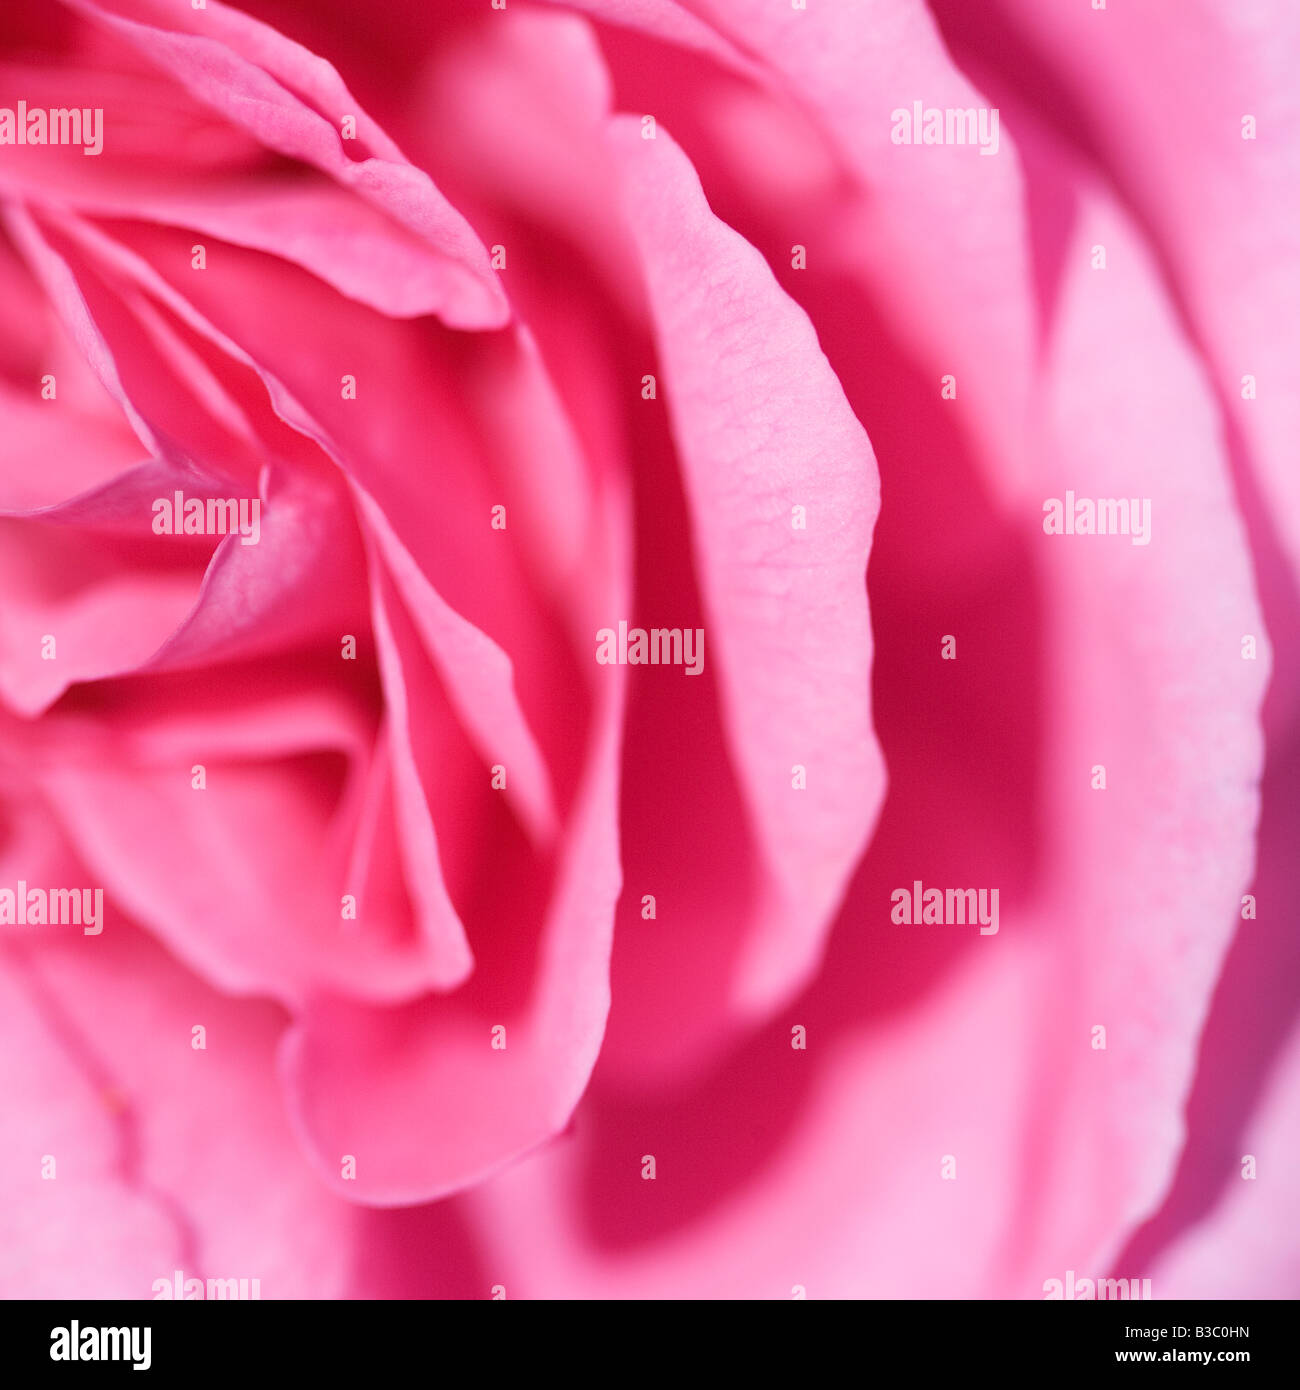 Pink rose petals close up - Stock Image